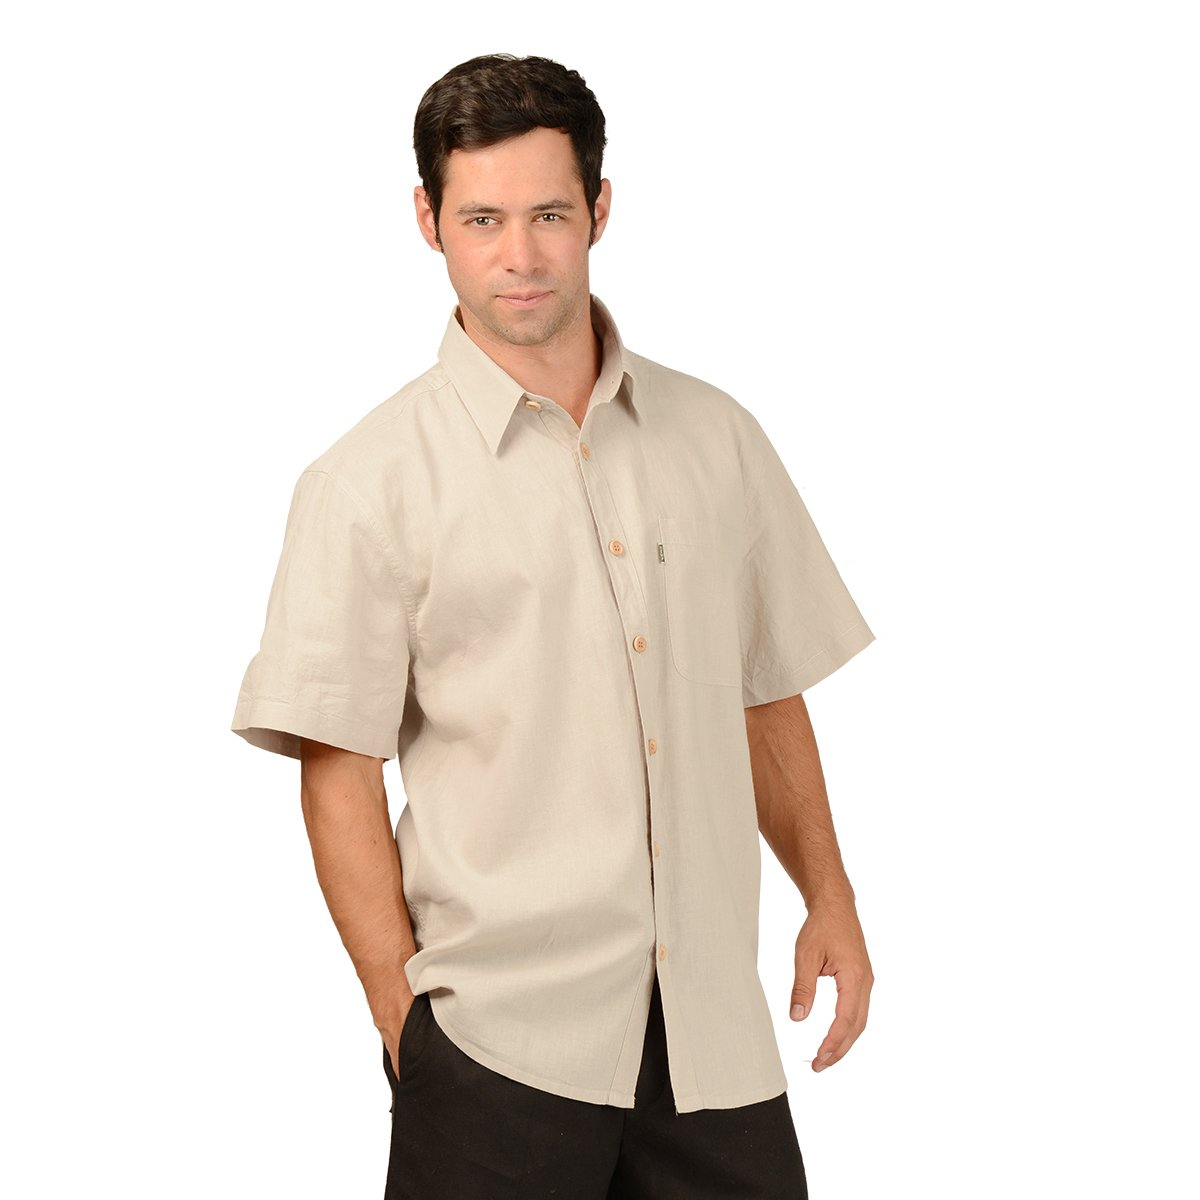 Efforts Mens Hemp//OC Short Sleeve Button Shirt